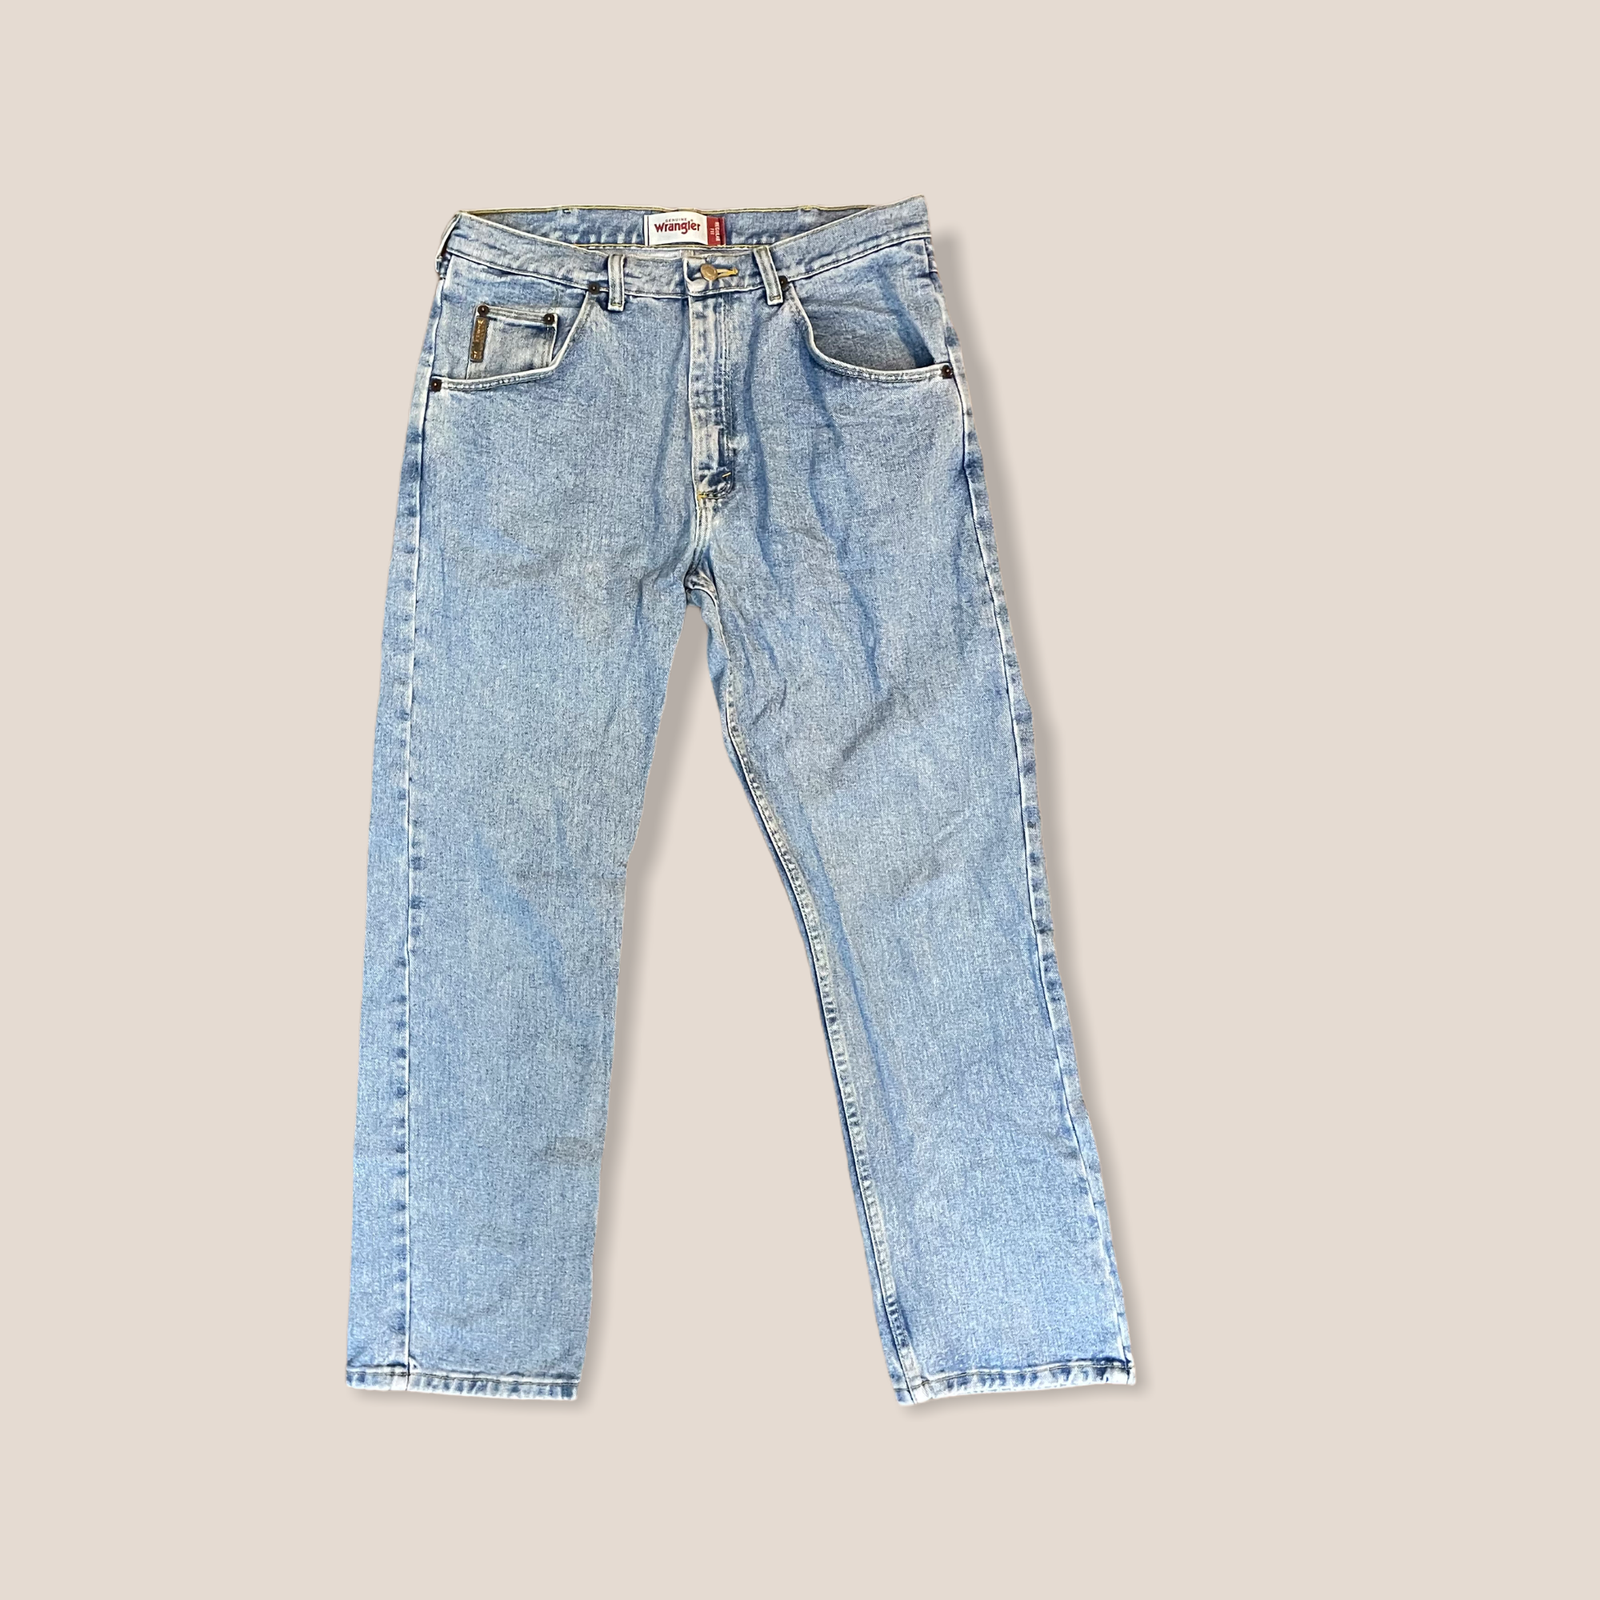 Product Image 1 - Wranglers regular fit jeans. 34x30